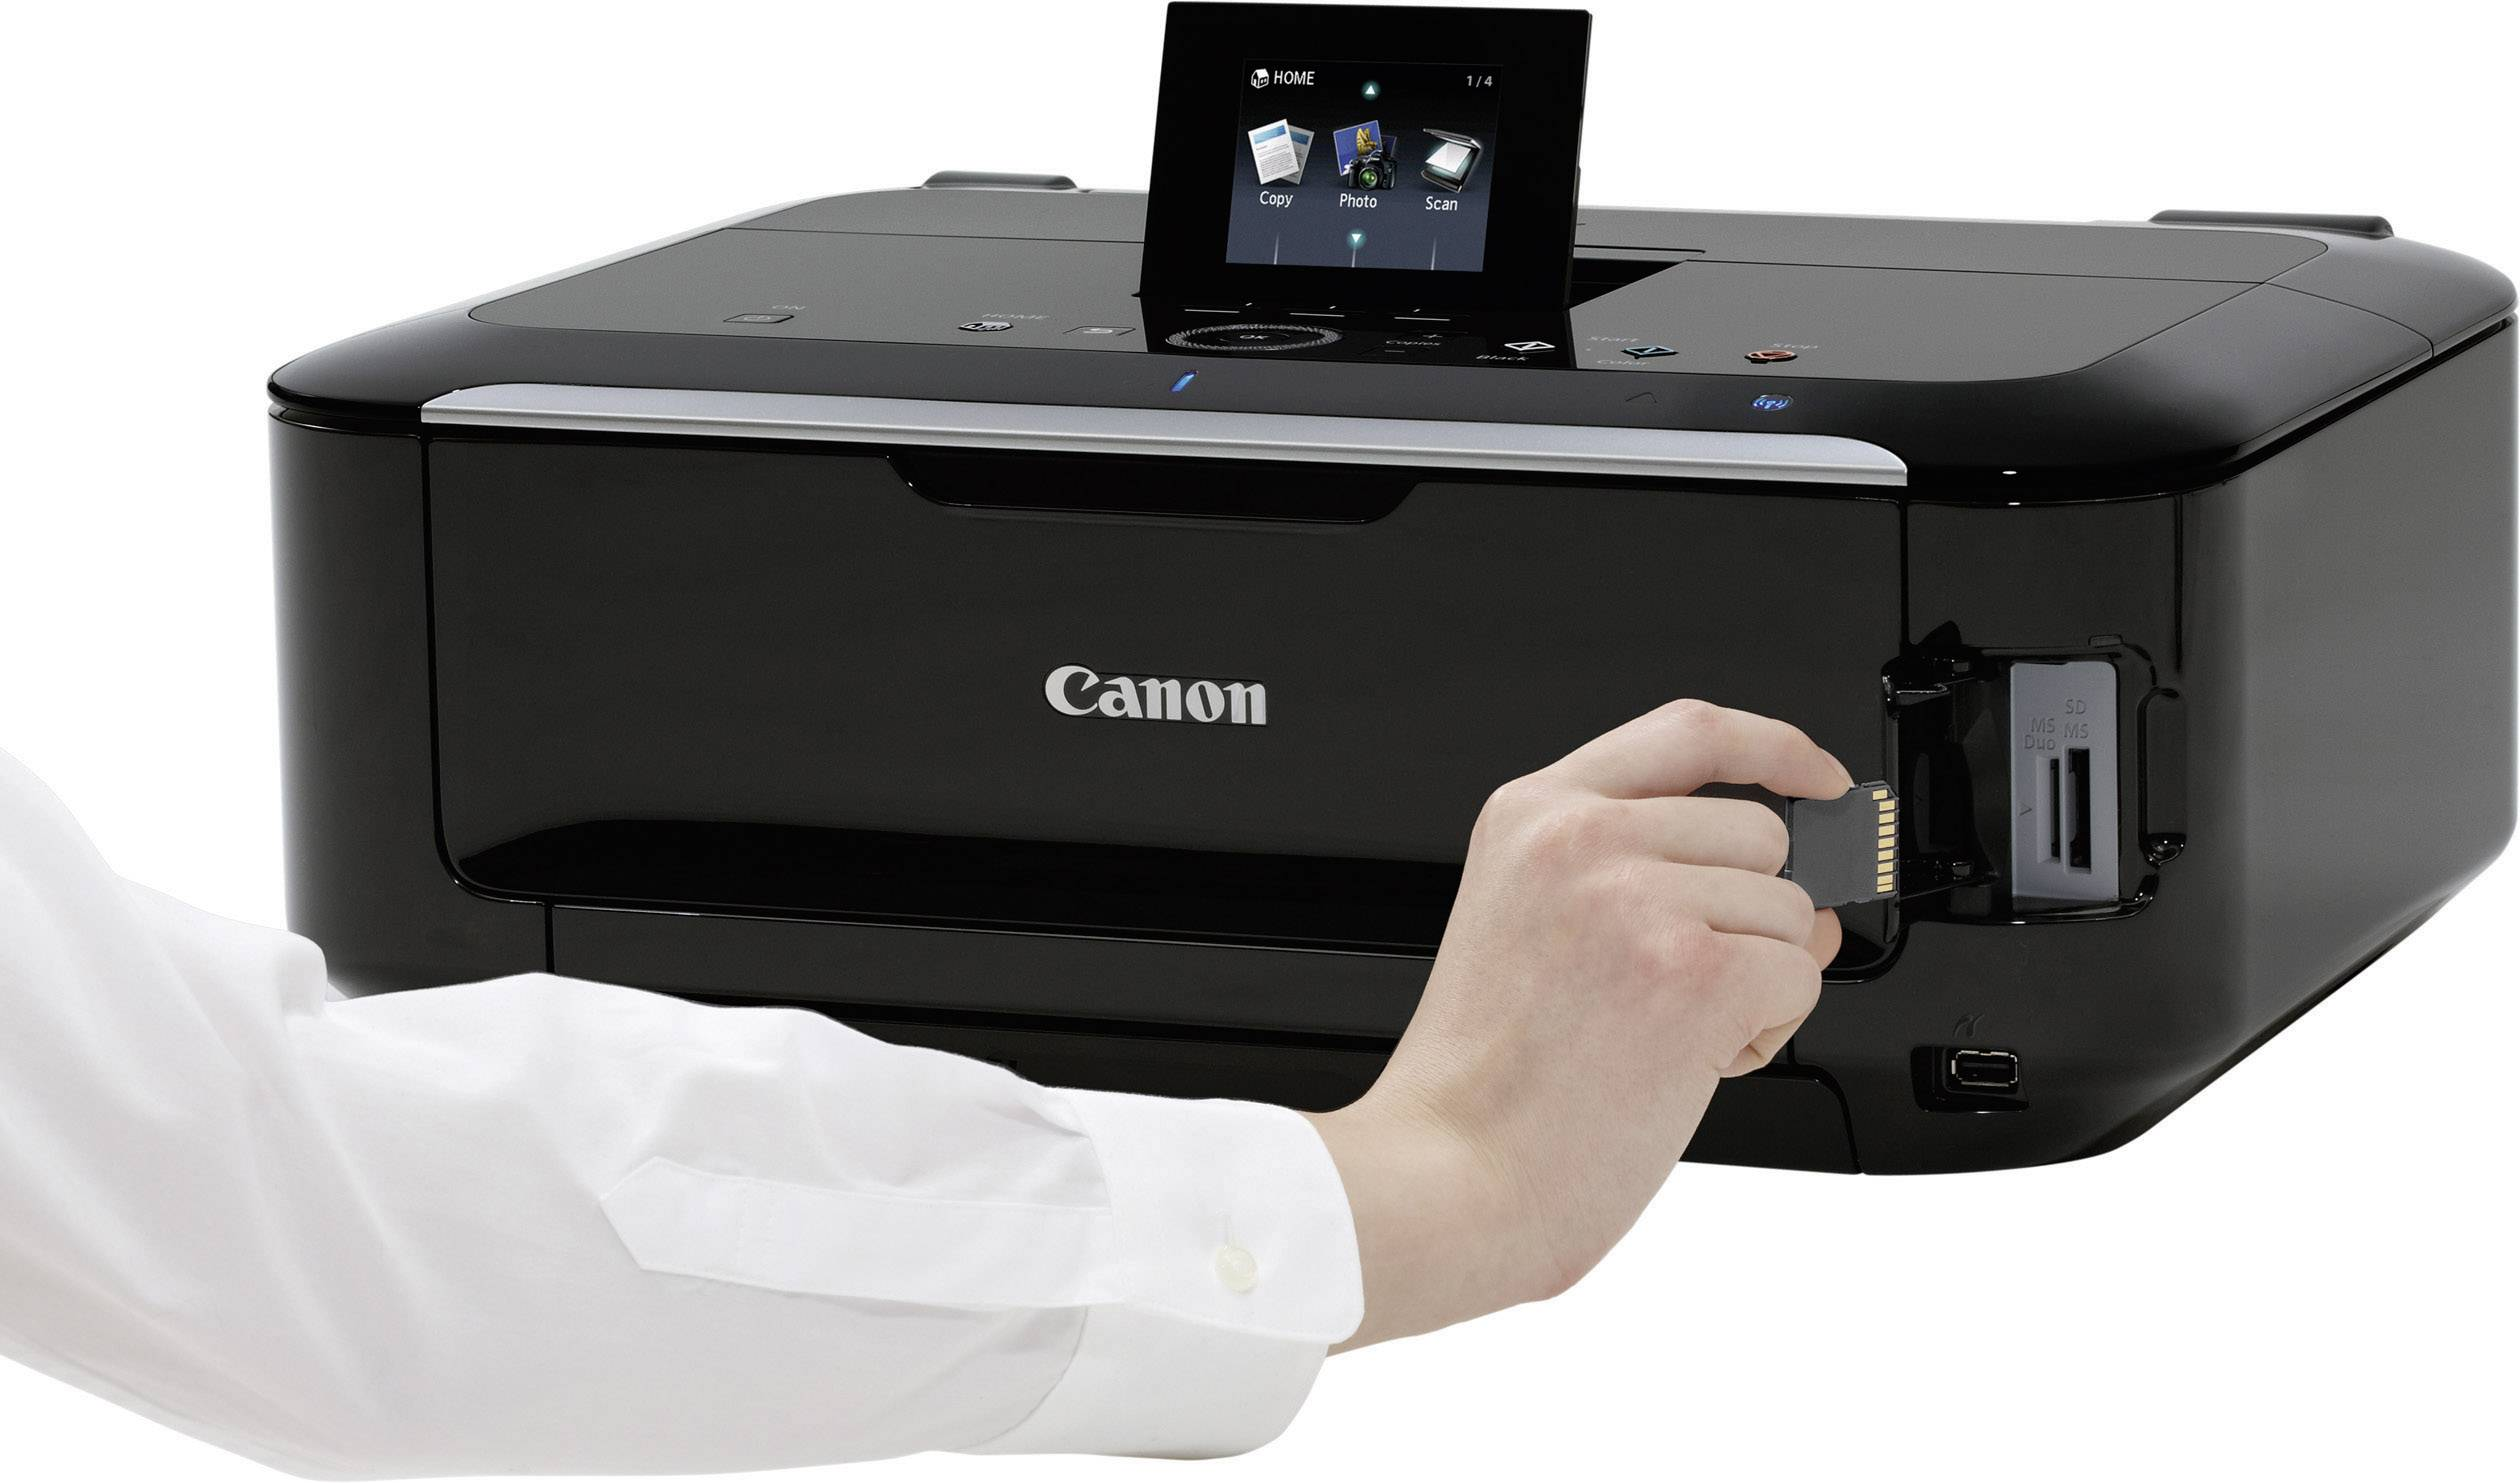 Canon Mf3010 Driver Free Download For Maclawyersnew